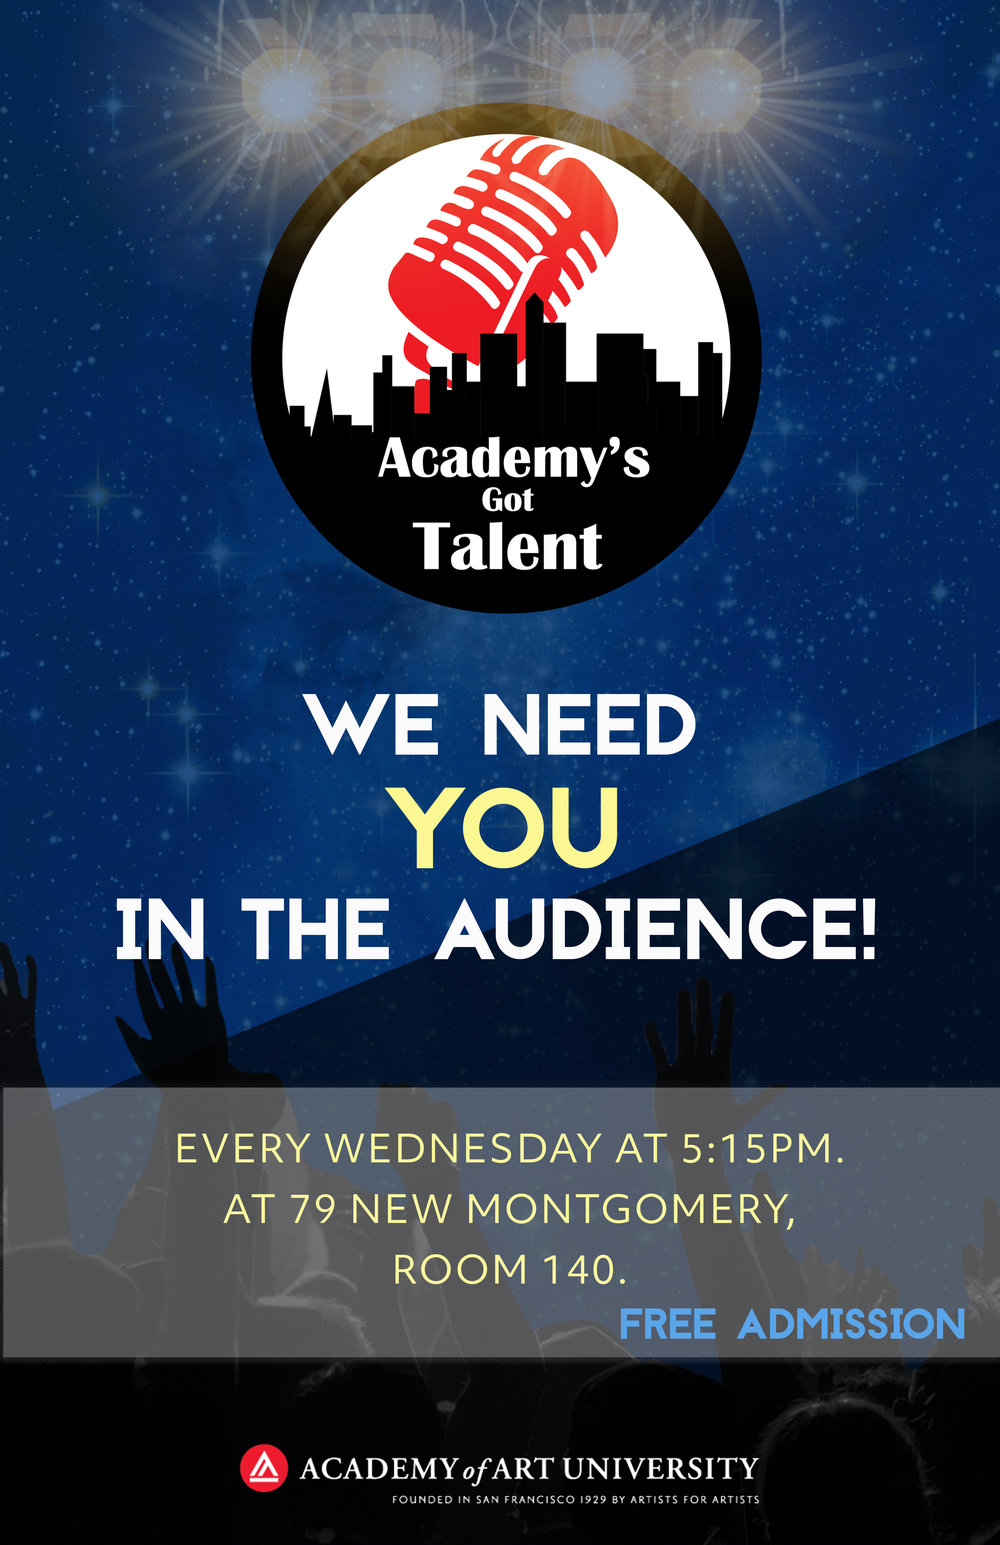 Academy's got talent audiencenewlogo.jpg